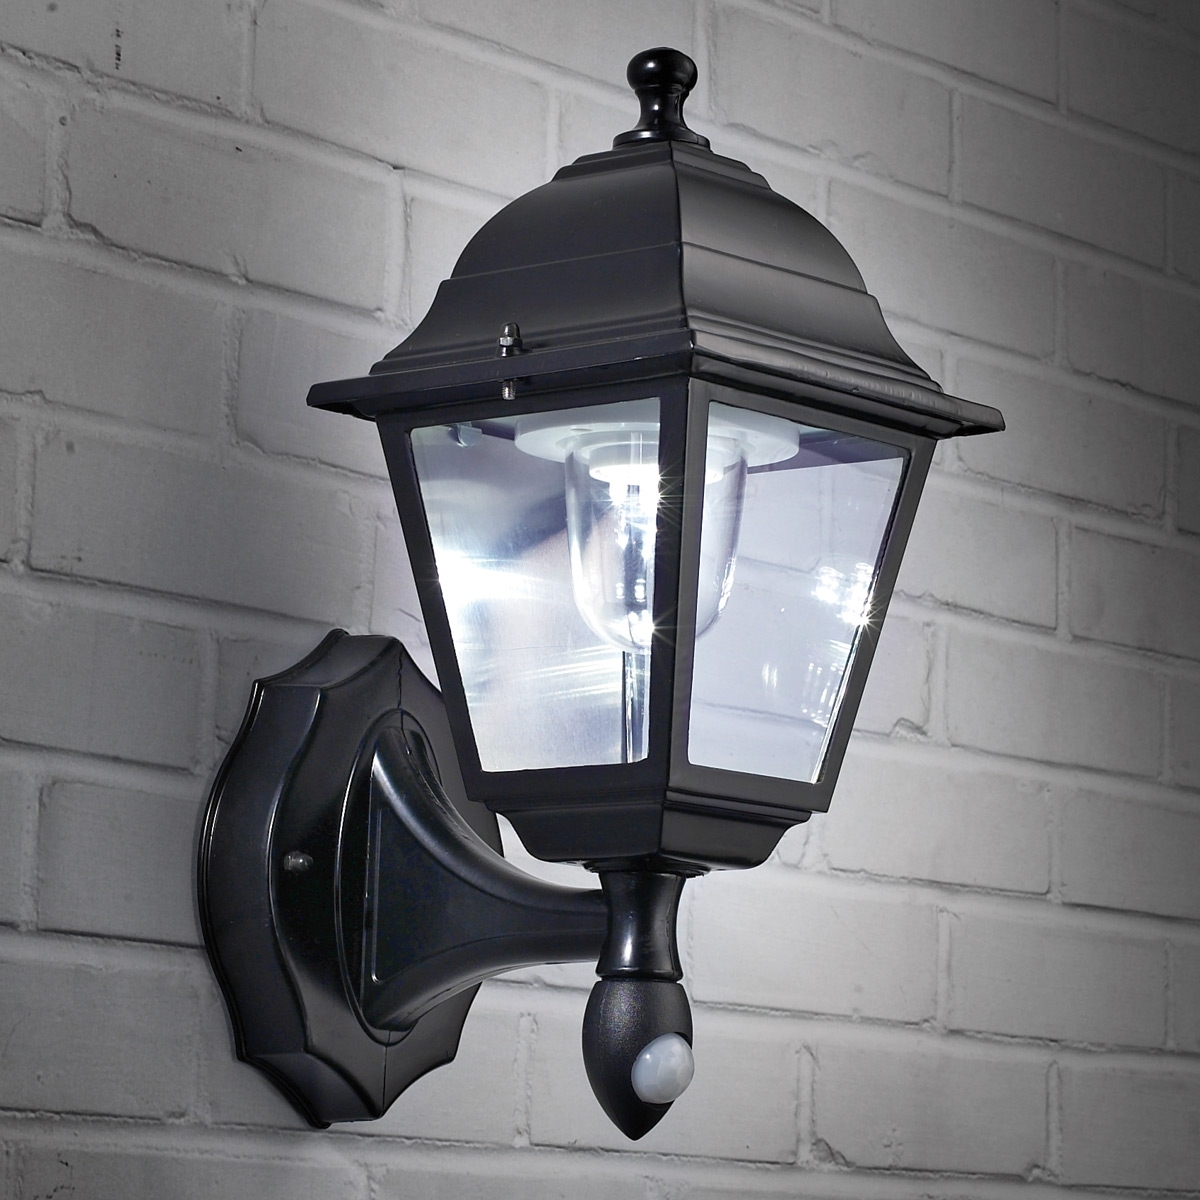 Outdoor Lanterns With Remote Control For Most Recently Released Indoor Light : Luxury Prime Indoor/outdoor Lighting Wireless Remote (Gallery 5 of 20)